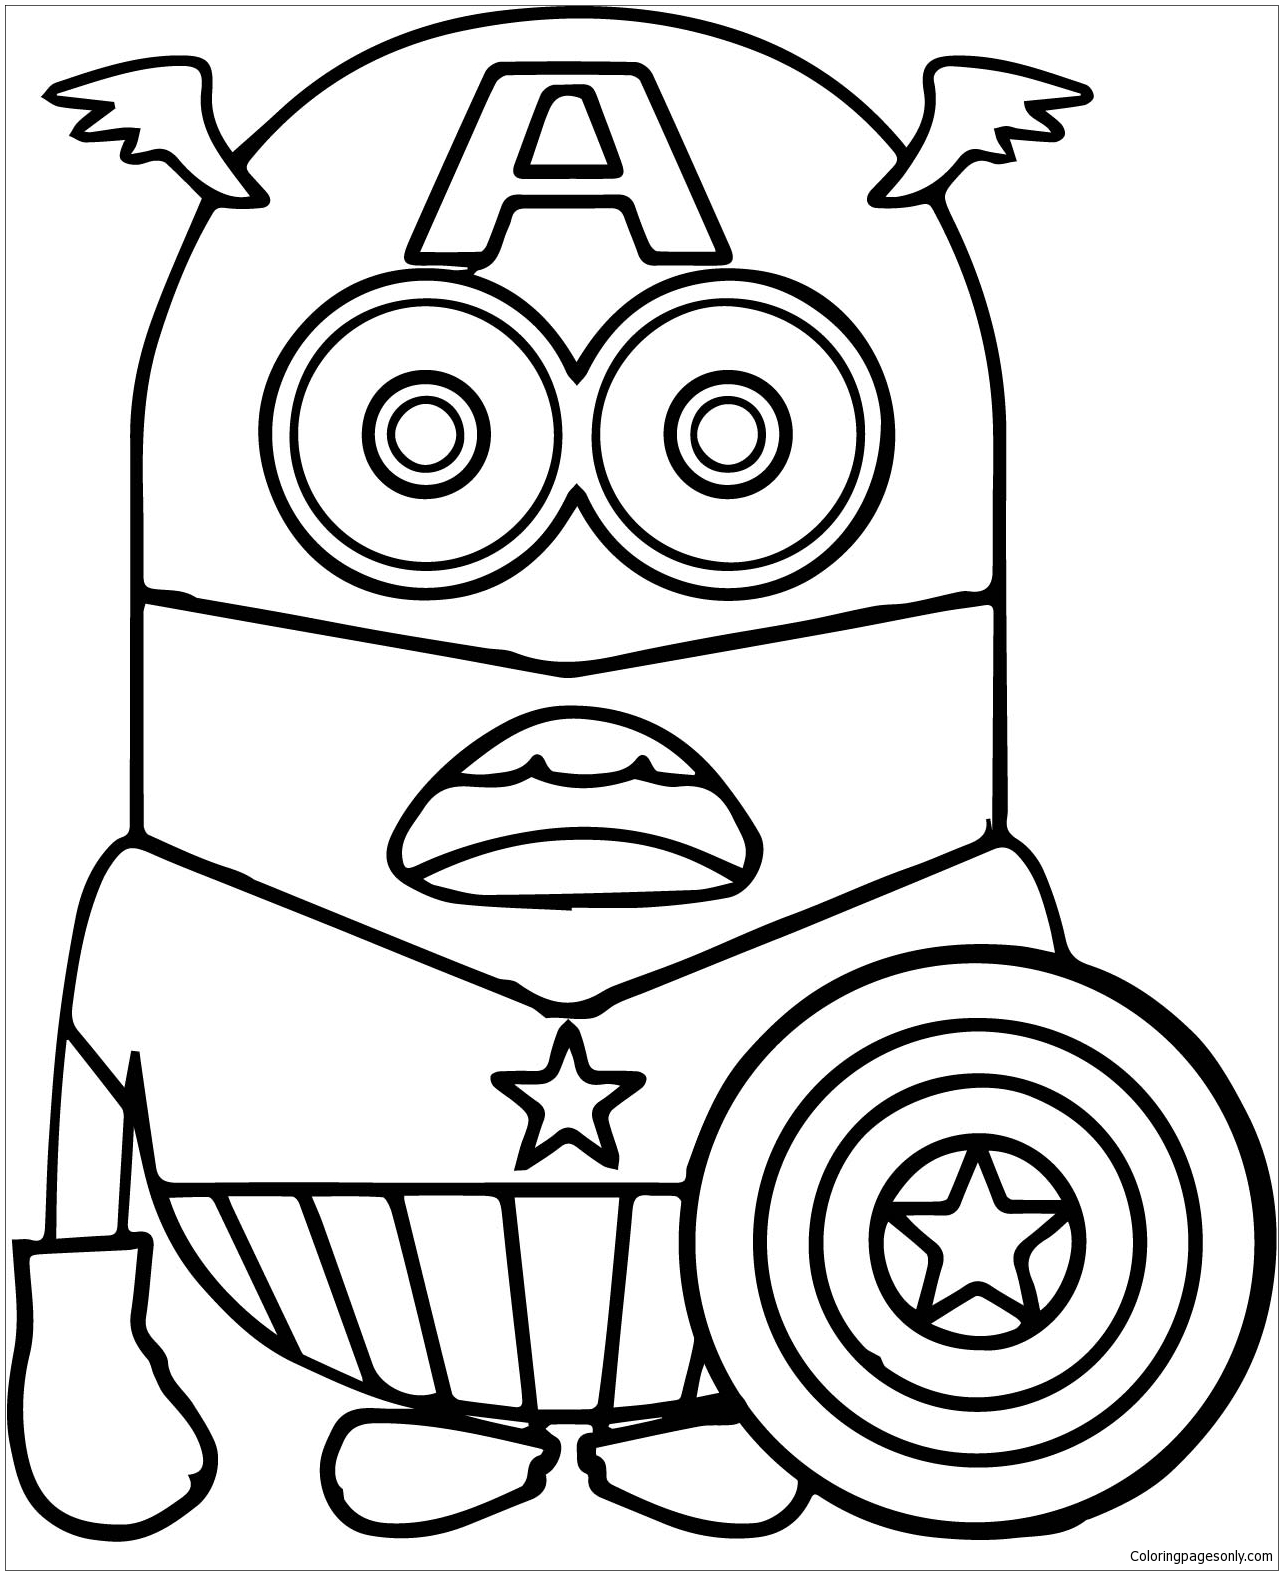 Captain America Helmet Coloring Page